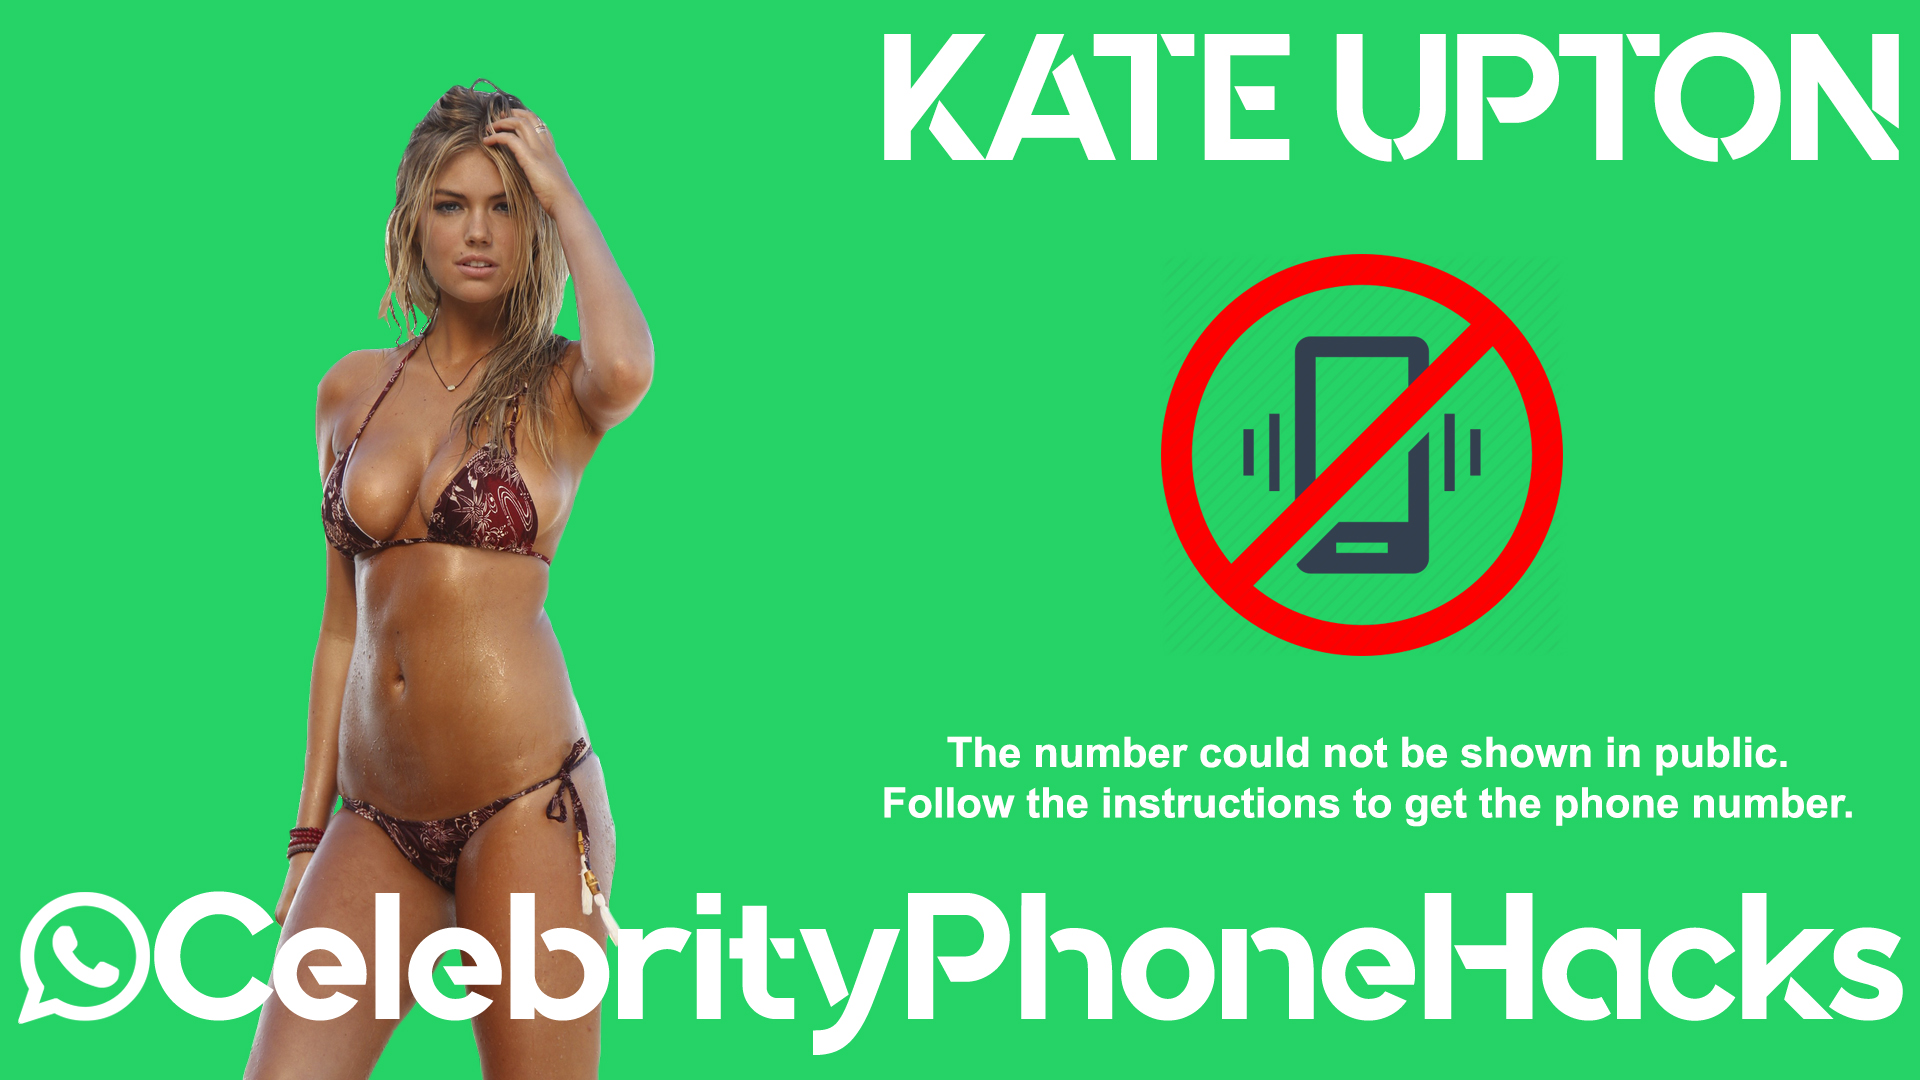 Kate Upton real phone number 2019 whatsapp hacked leaked